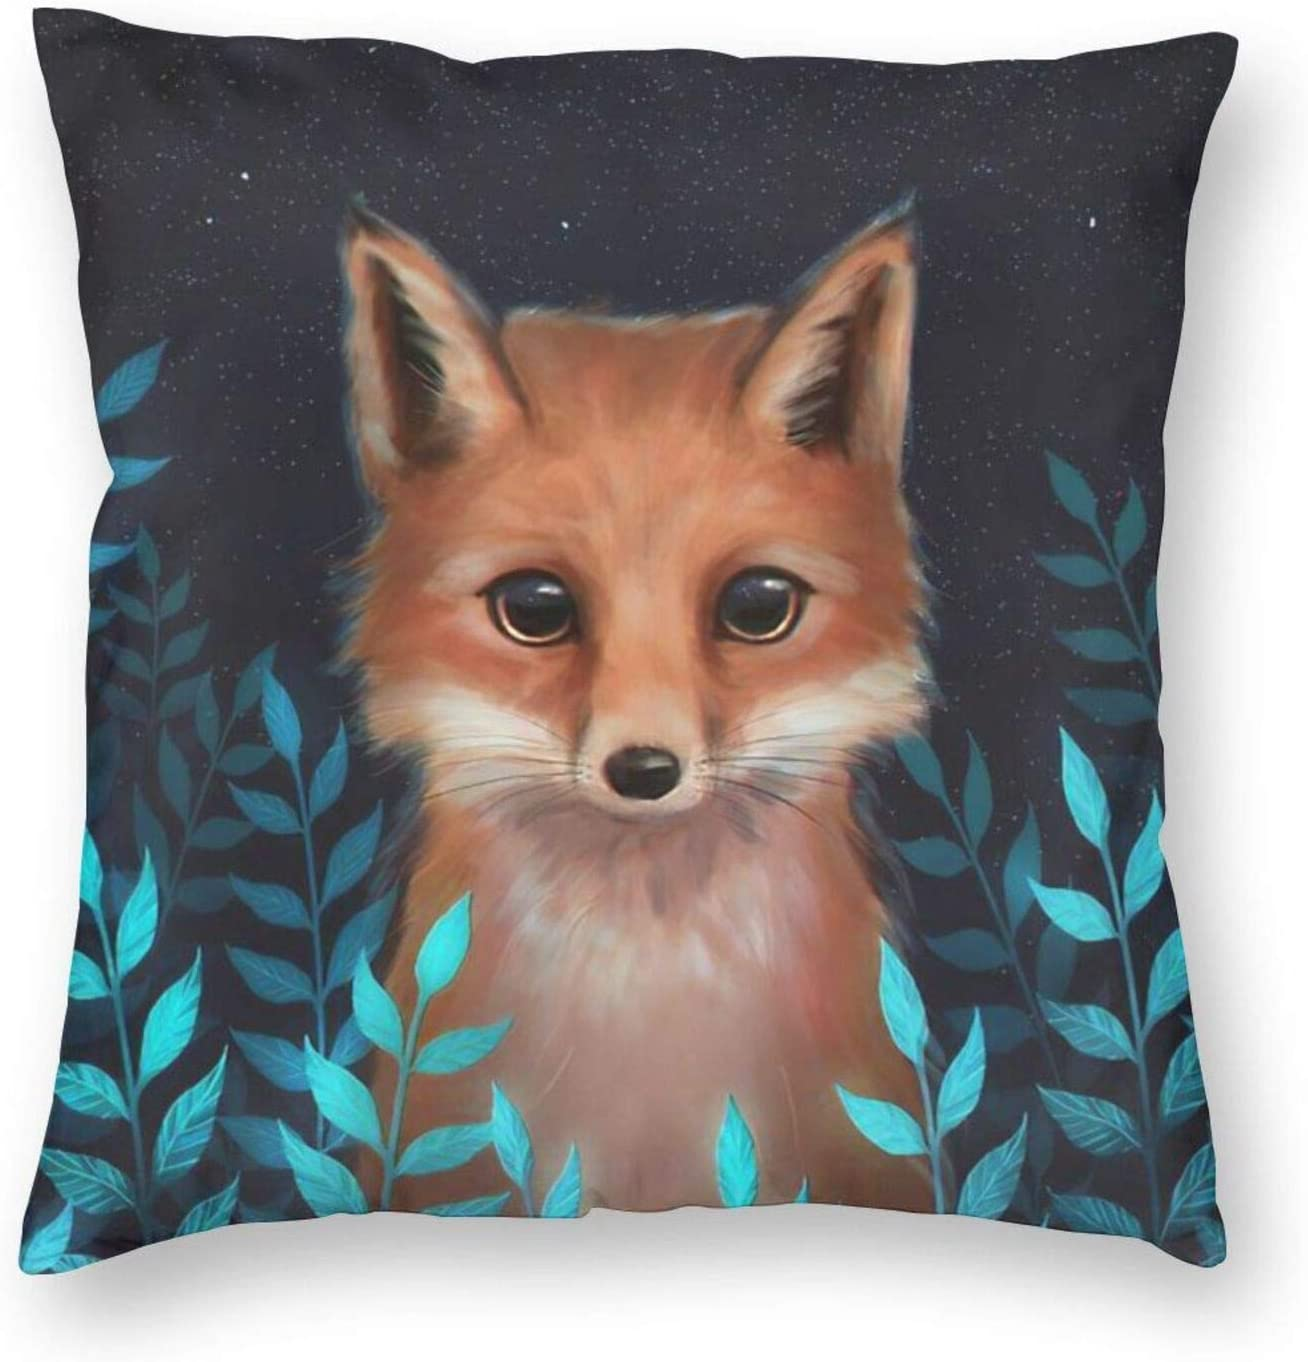 MINIOZE Autumn Cute Animal Blue Fox Leaves Fall Print Plush Soft Square Pillow Covers Home Decor Cushion Covers Decorations Gifts Pillowcase for Indoor Sofa Bedroom Car 18 x 18 Inch